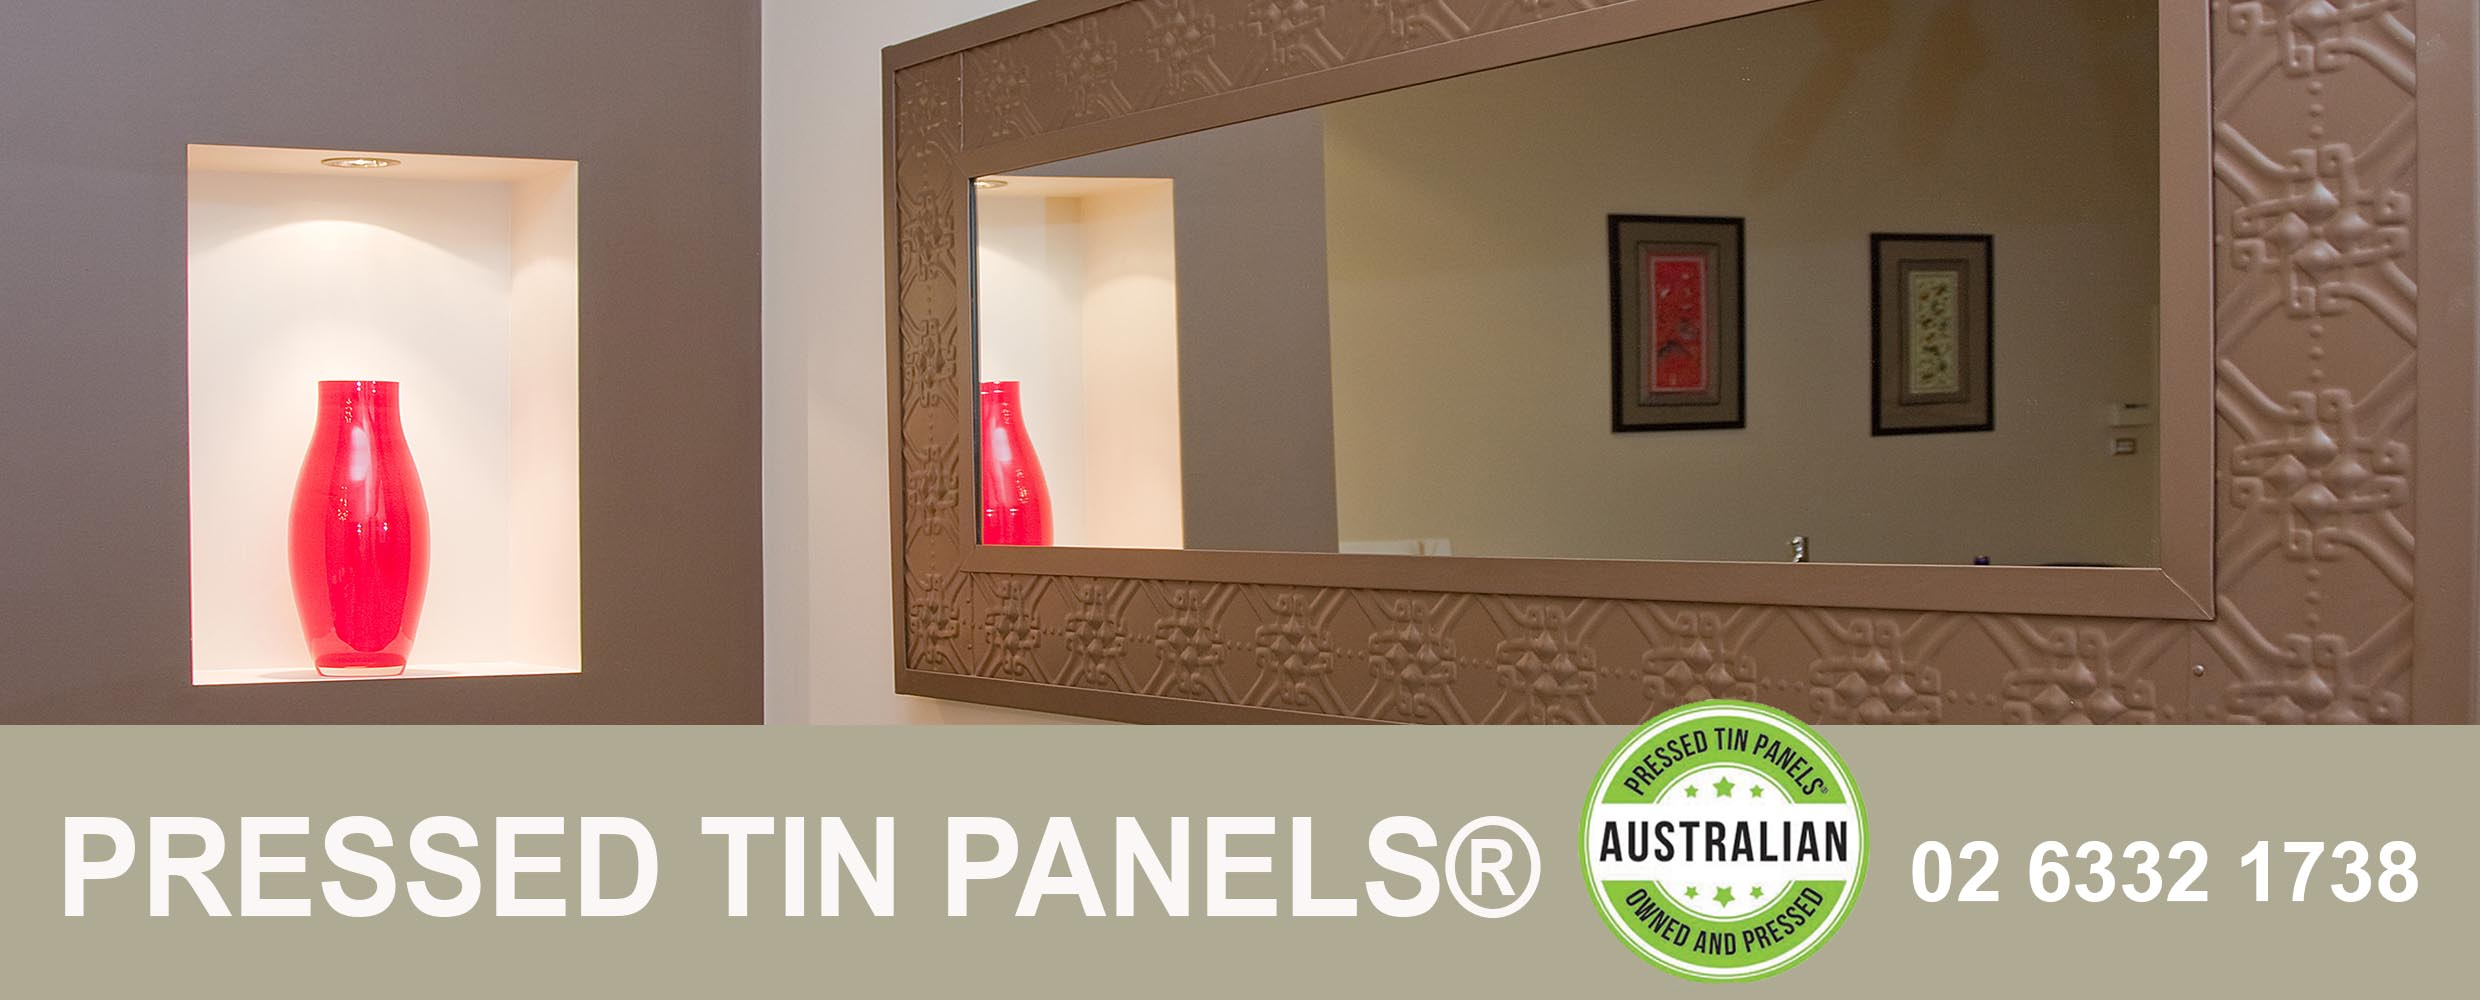 STYLE-&-DESIGN-WITH-Pressed-Tin-Panels® - PRESSED-TIN-PANELS